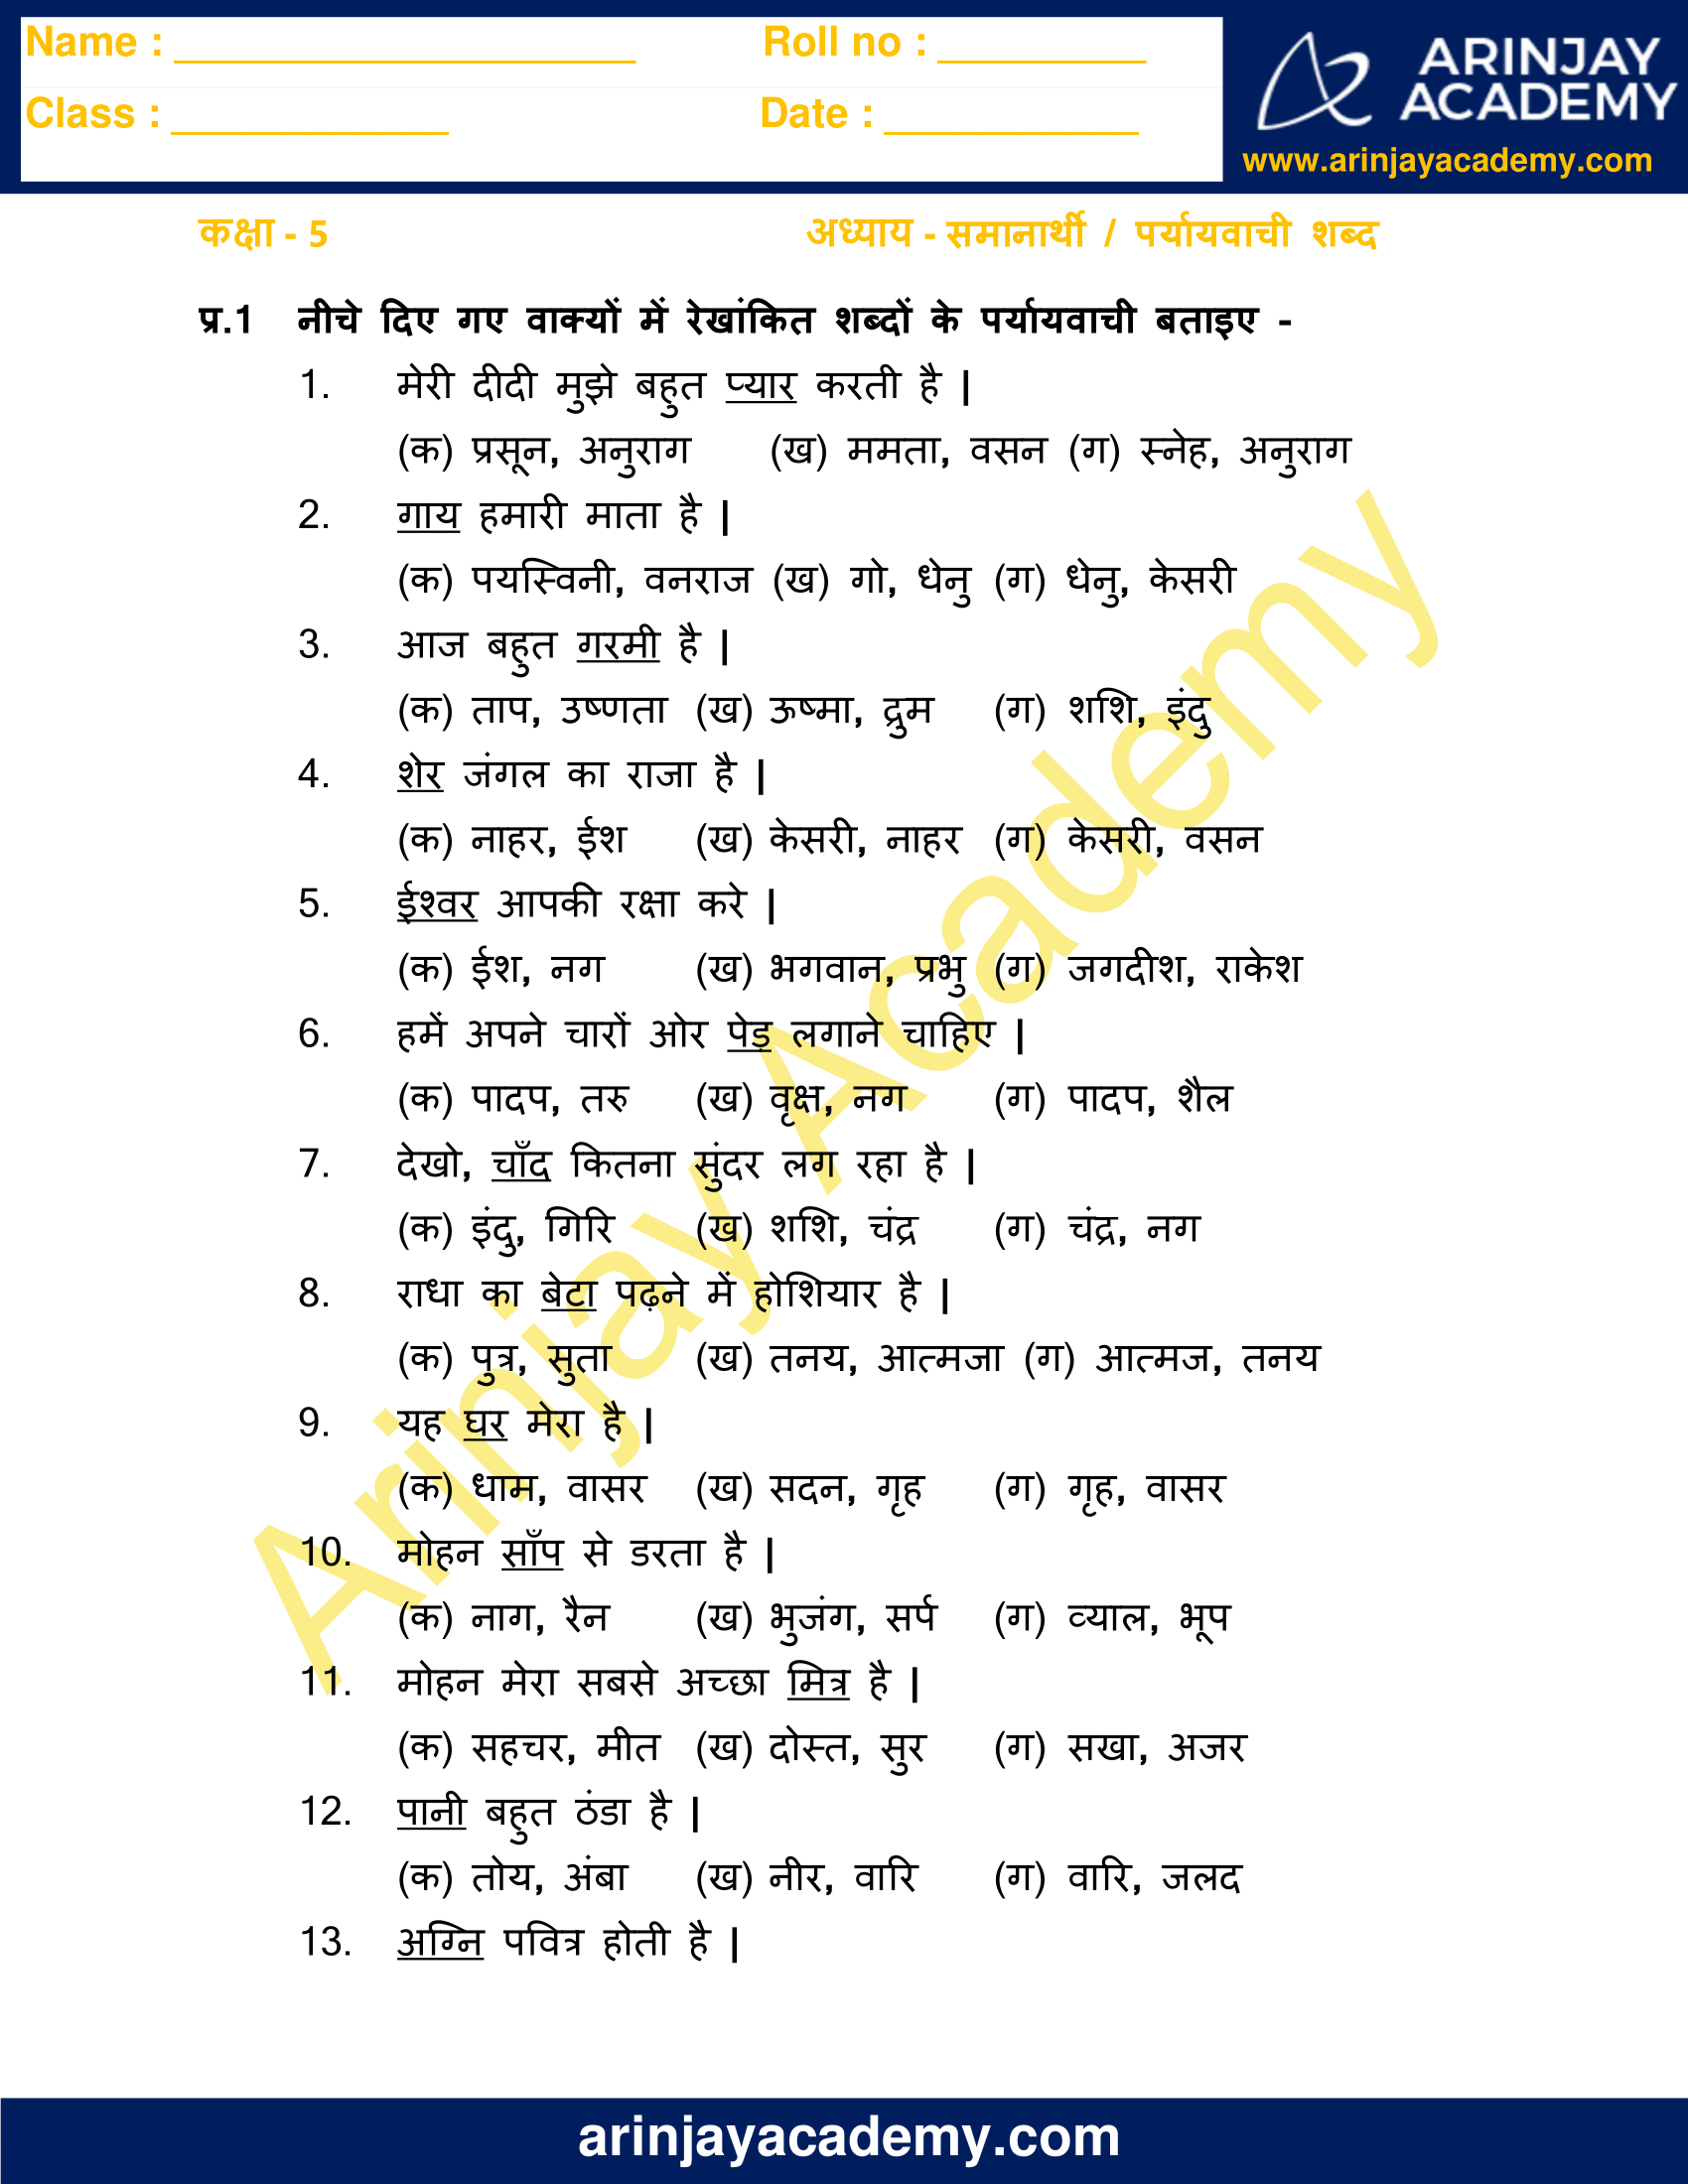 Samanarthi shabd in Hindi Worksheet for Class 5 image 1